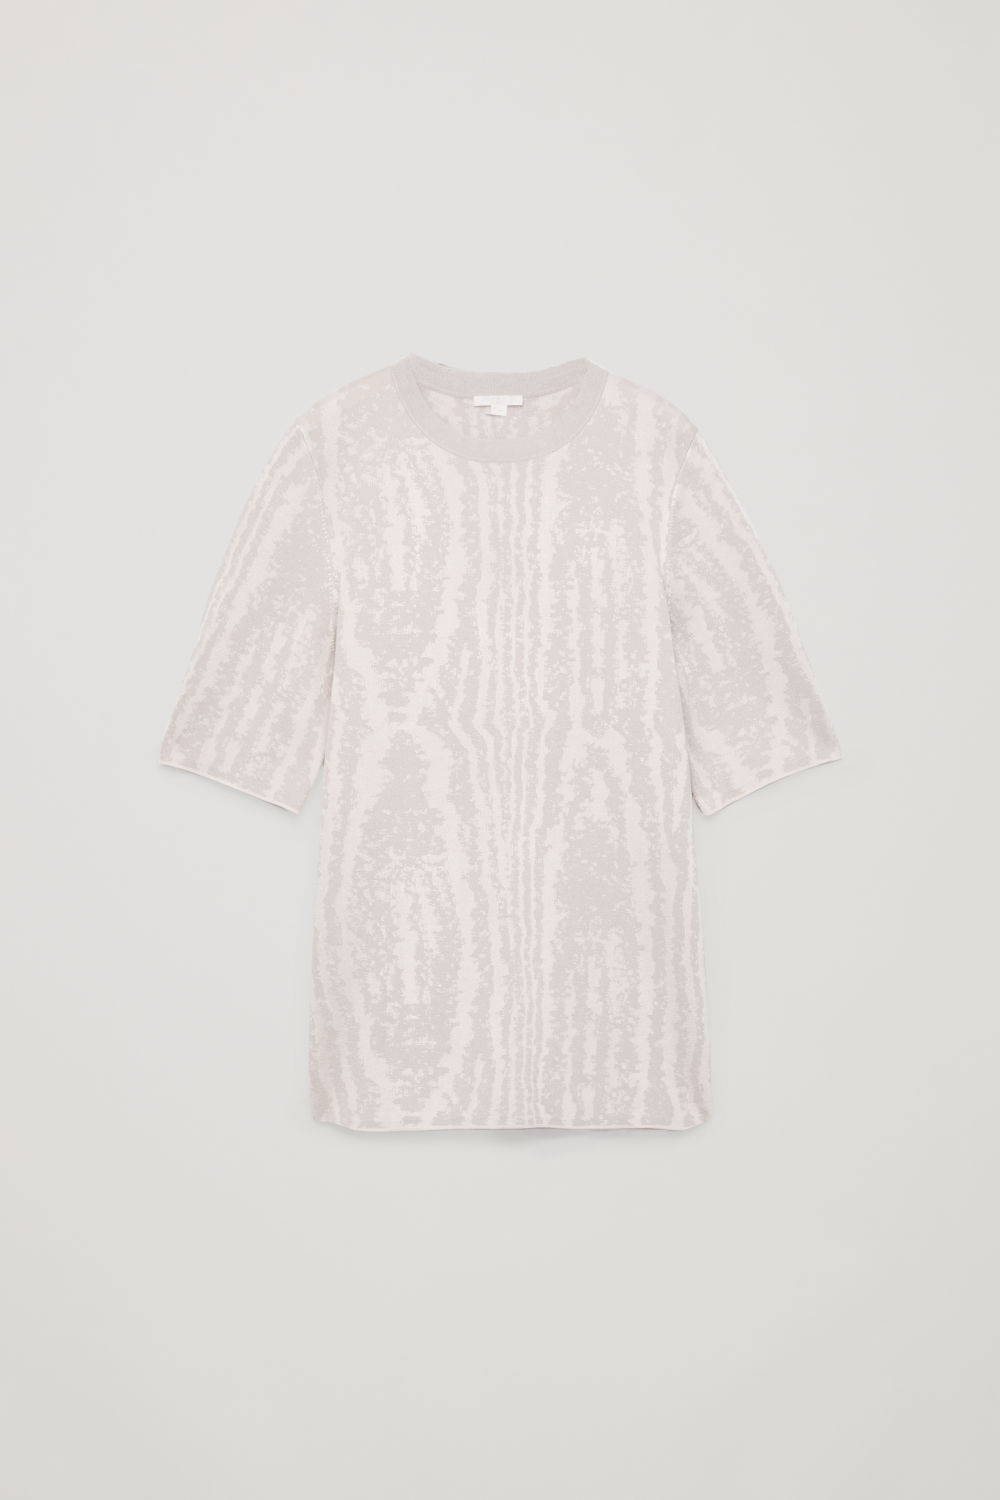 MOIRE JACQUARD-KNIT TOP